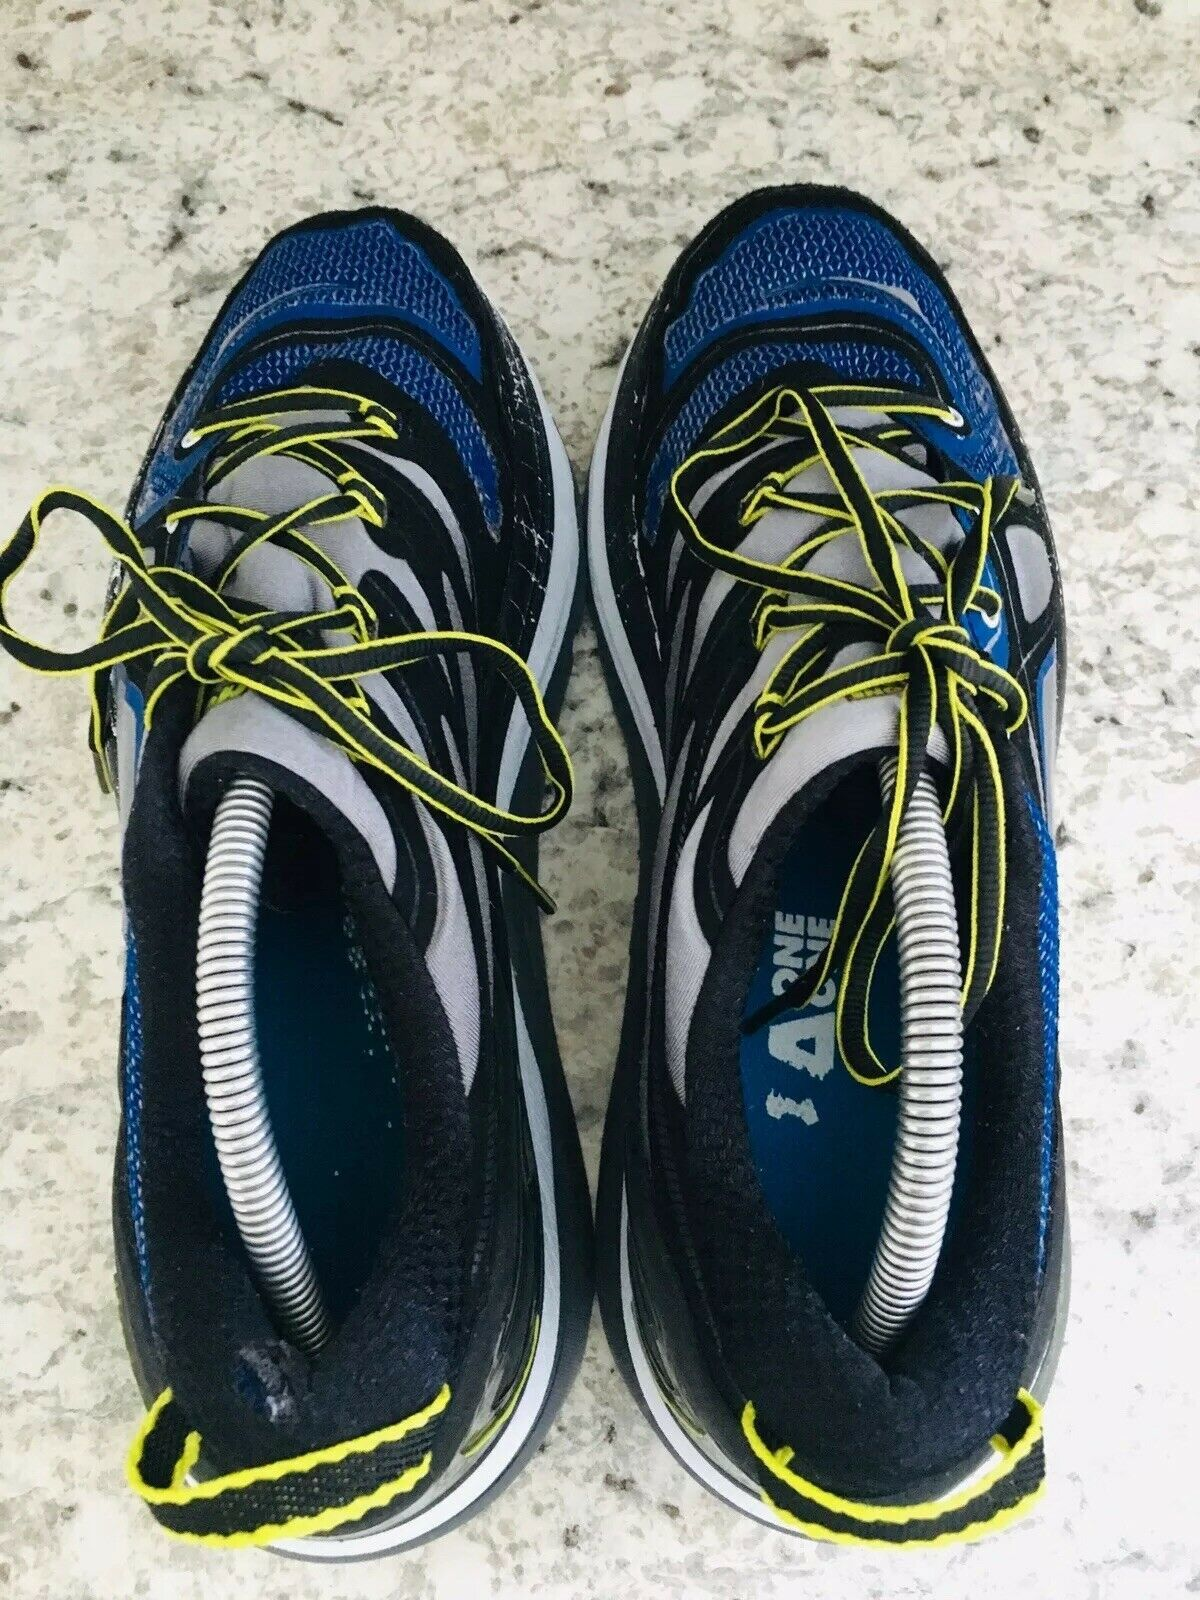 HOKA One One Constant Blue Yellow & Black running Shoes Men's SIZE 10 image 7